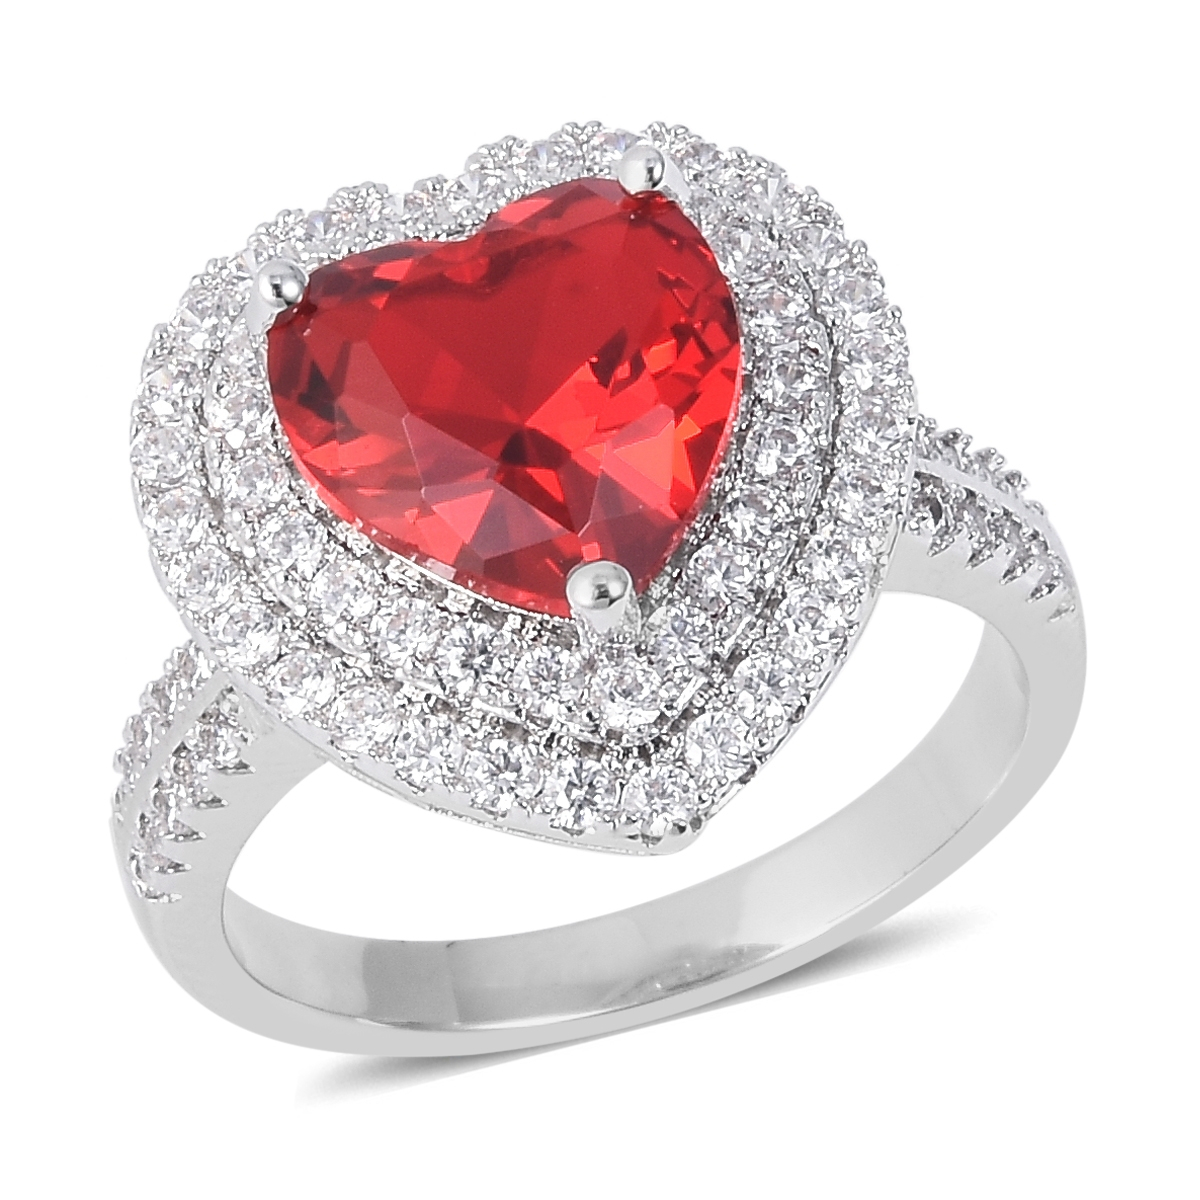 Red Glass, White Cz Heart Ring In Silvertone (size 11.0) (View 10 of 25)